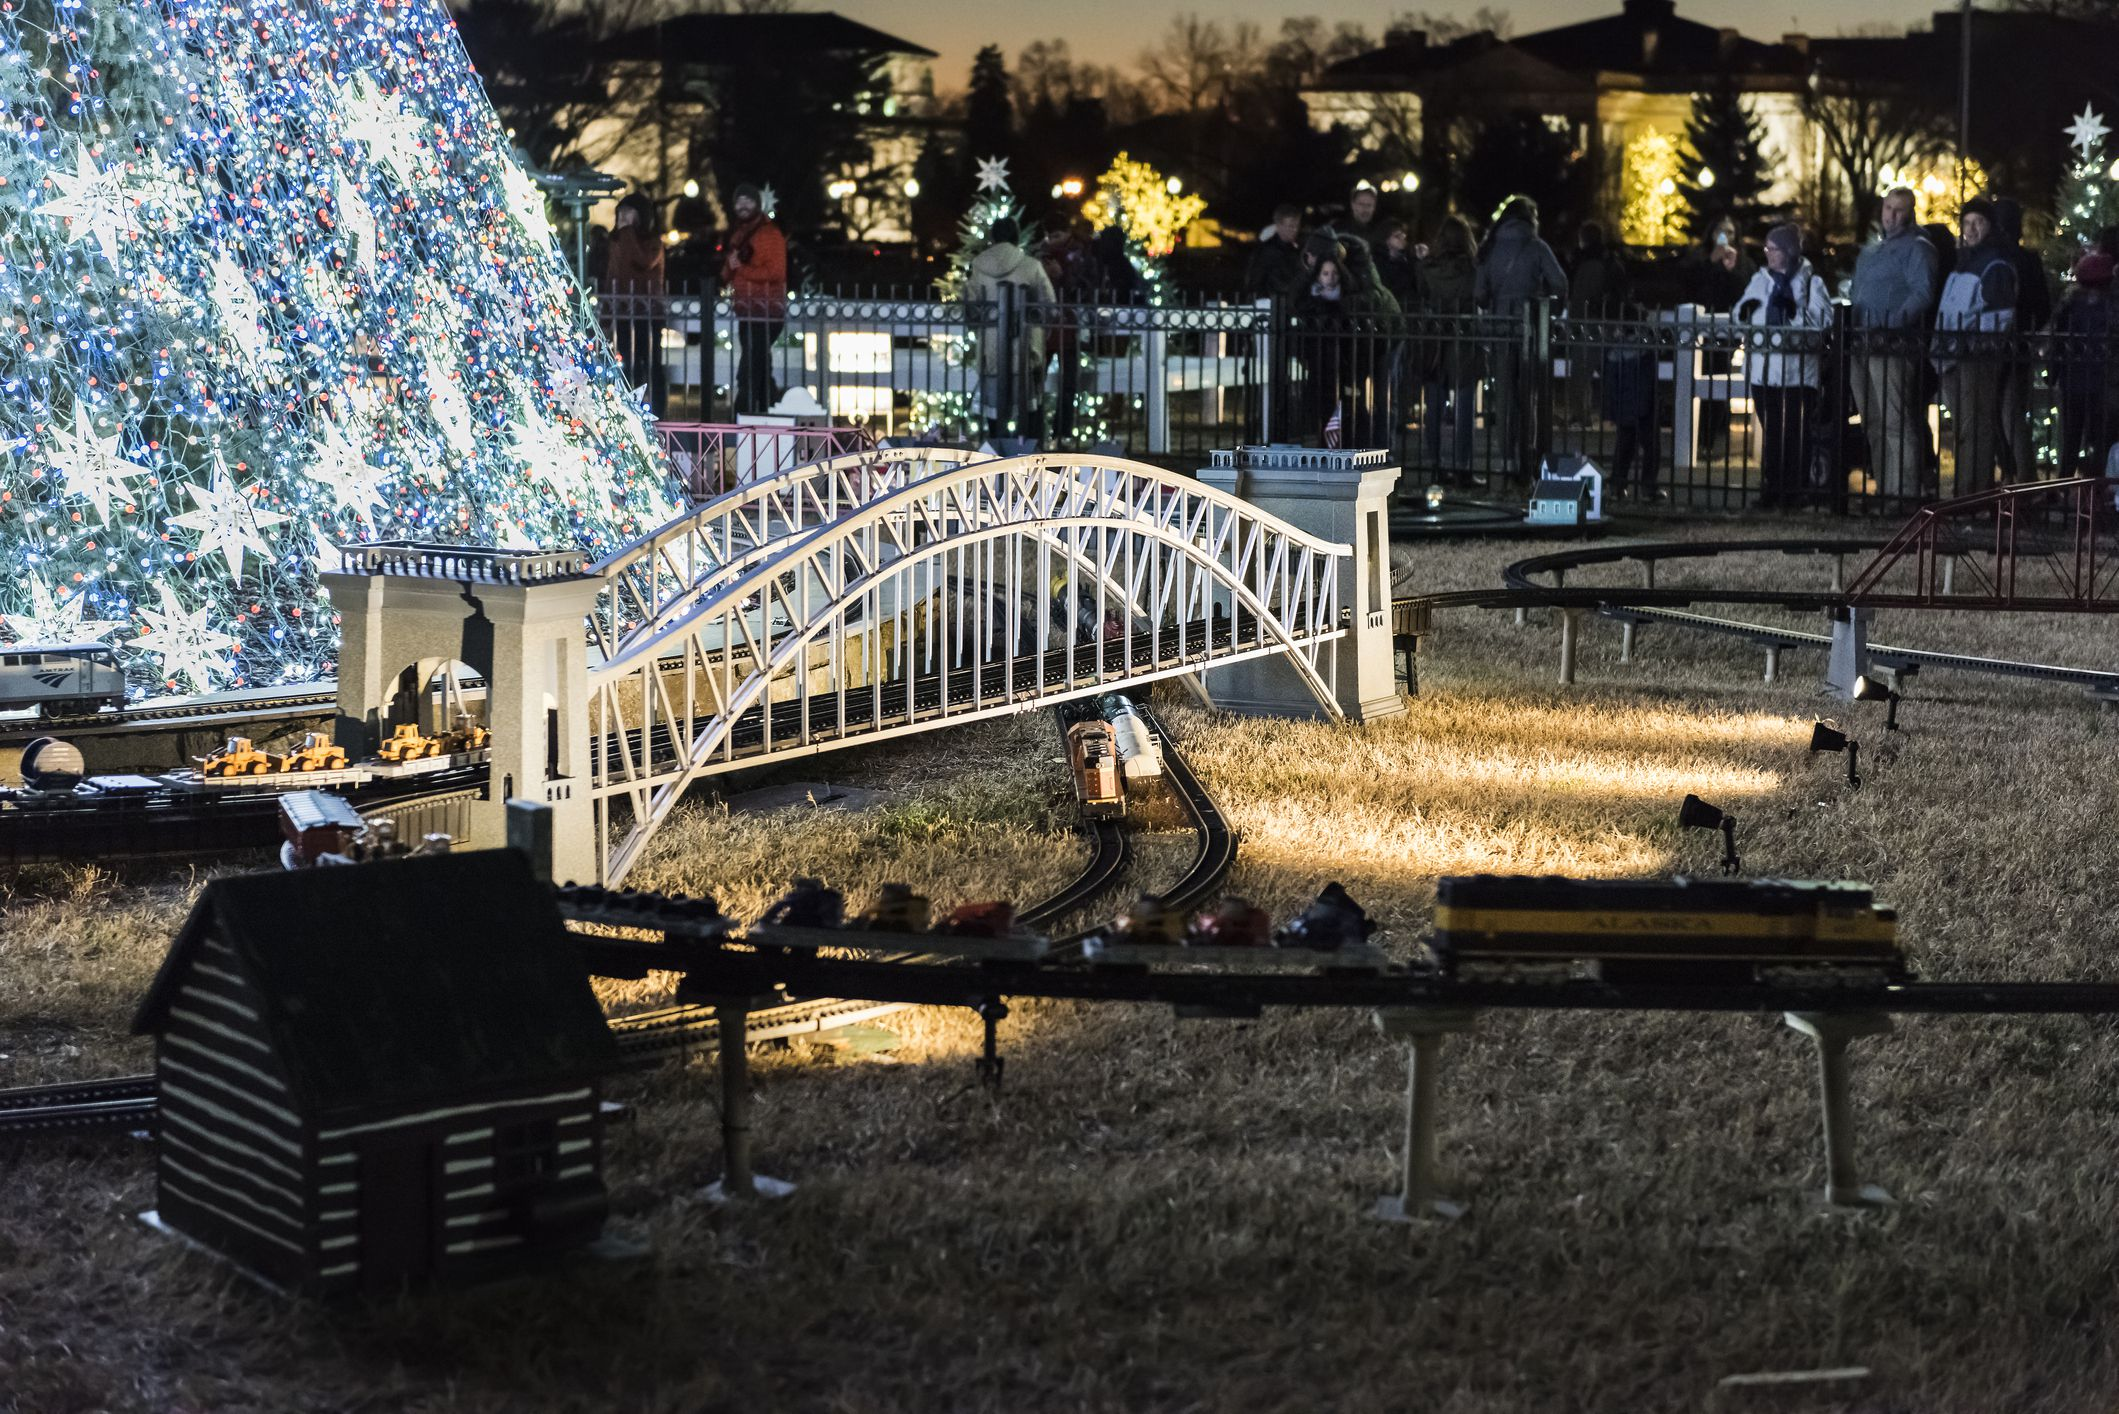 National Mall Christmas tree with visitors illuminated with toy trains